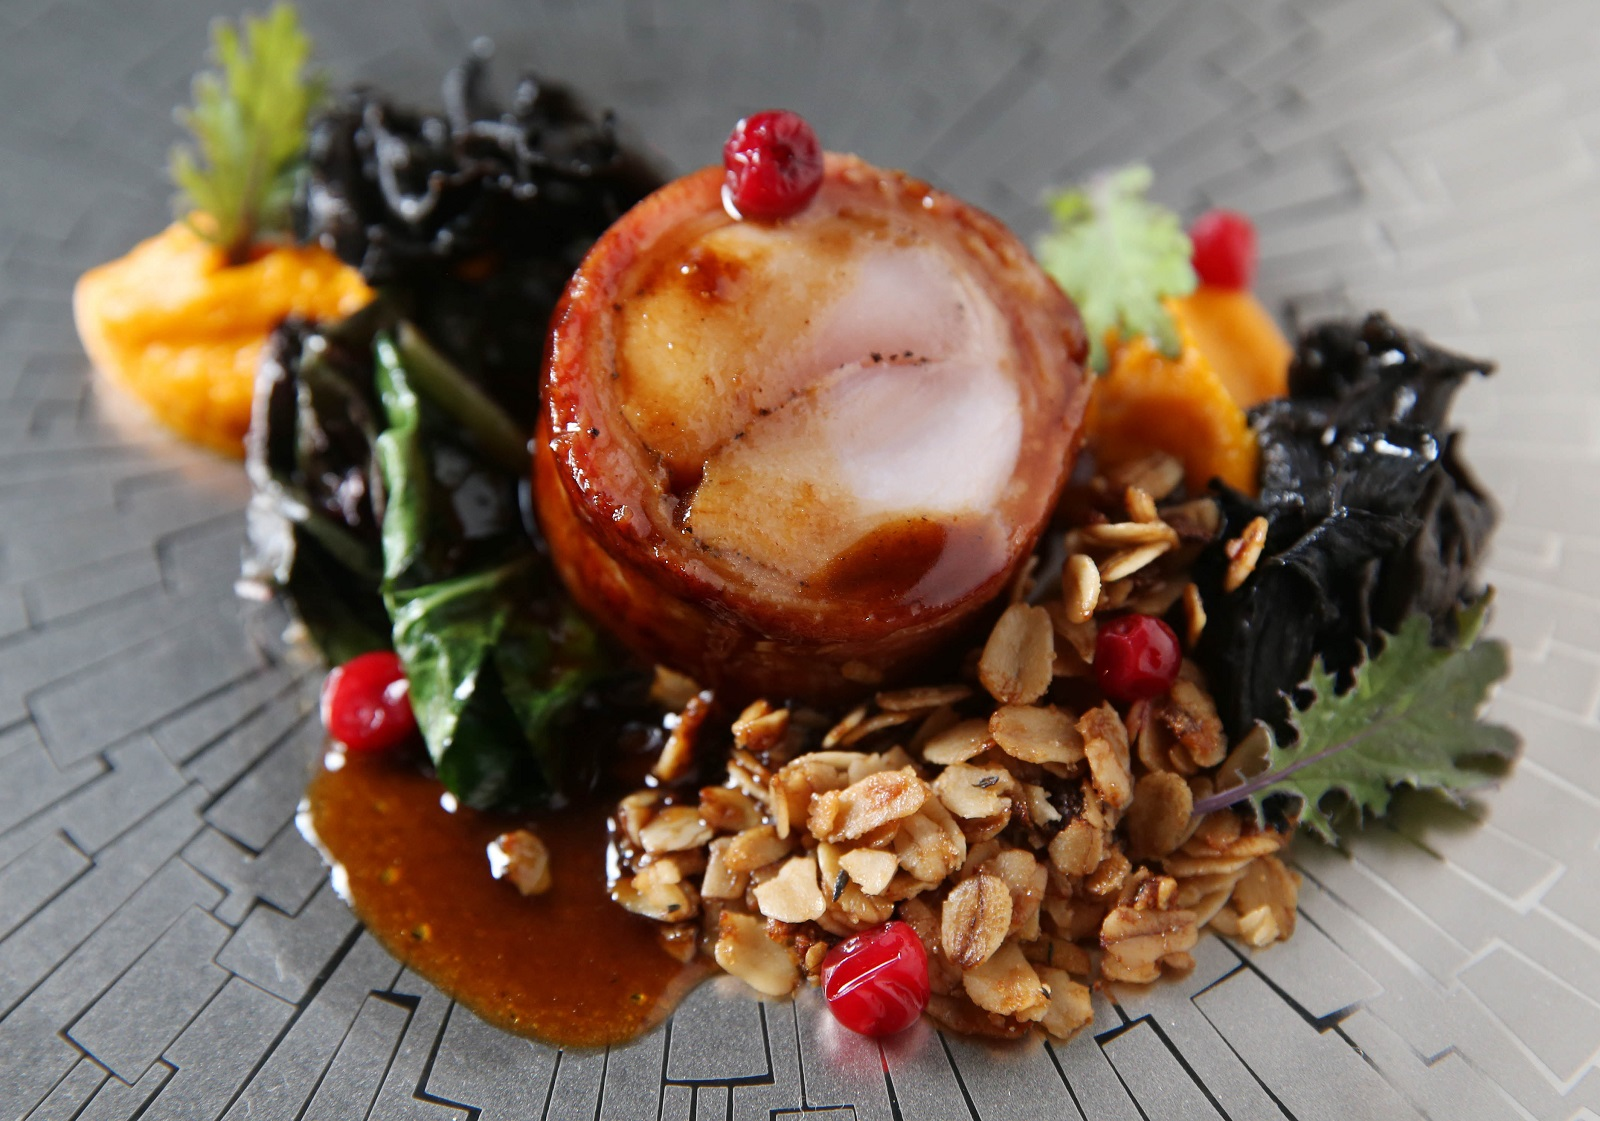 Oliver's fifth course is Elmer's Revenge which is sous vide saddle, carrot pudding, oat crumble, black trumpet mushrooms and lingonberries. (Sharon Cantillon/Buffalo News)